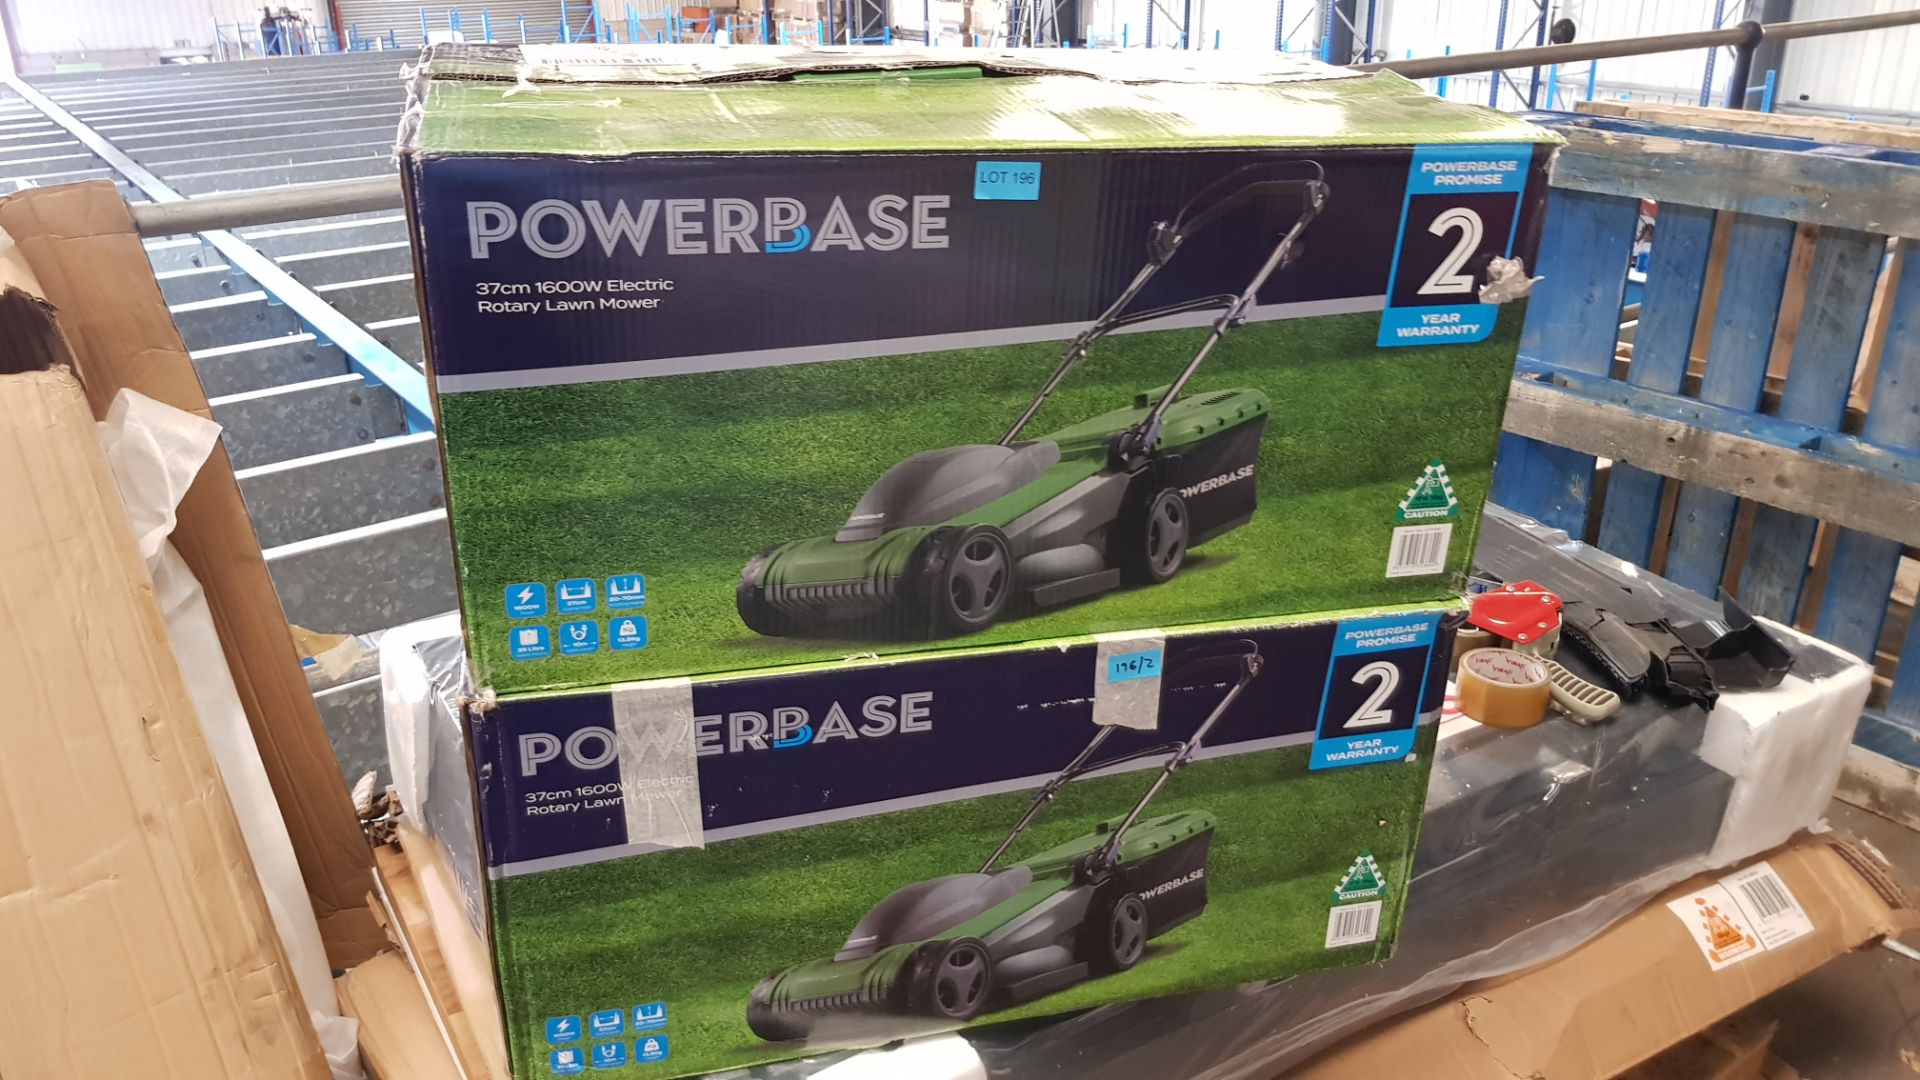 (P7) 2x Powerbase 37cm 1600W Electric Rotary Lawn Mower RRP £99 Each. - Image 3 of 3